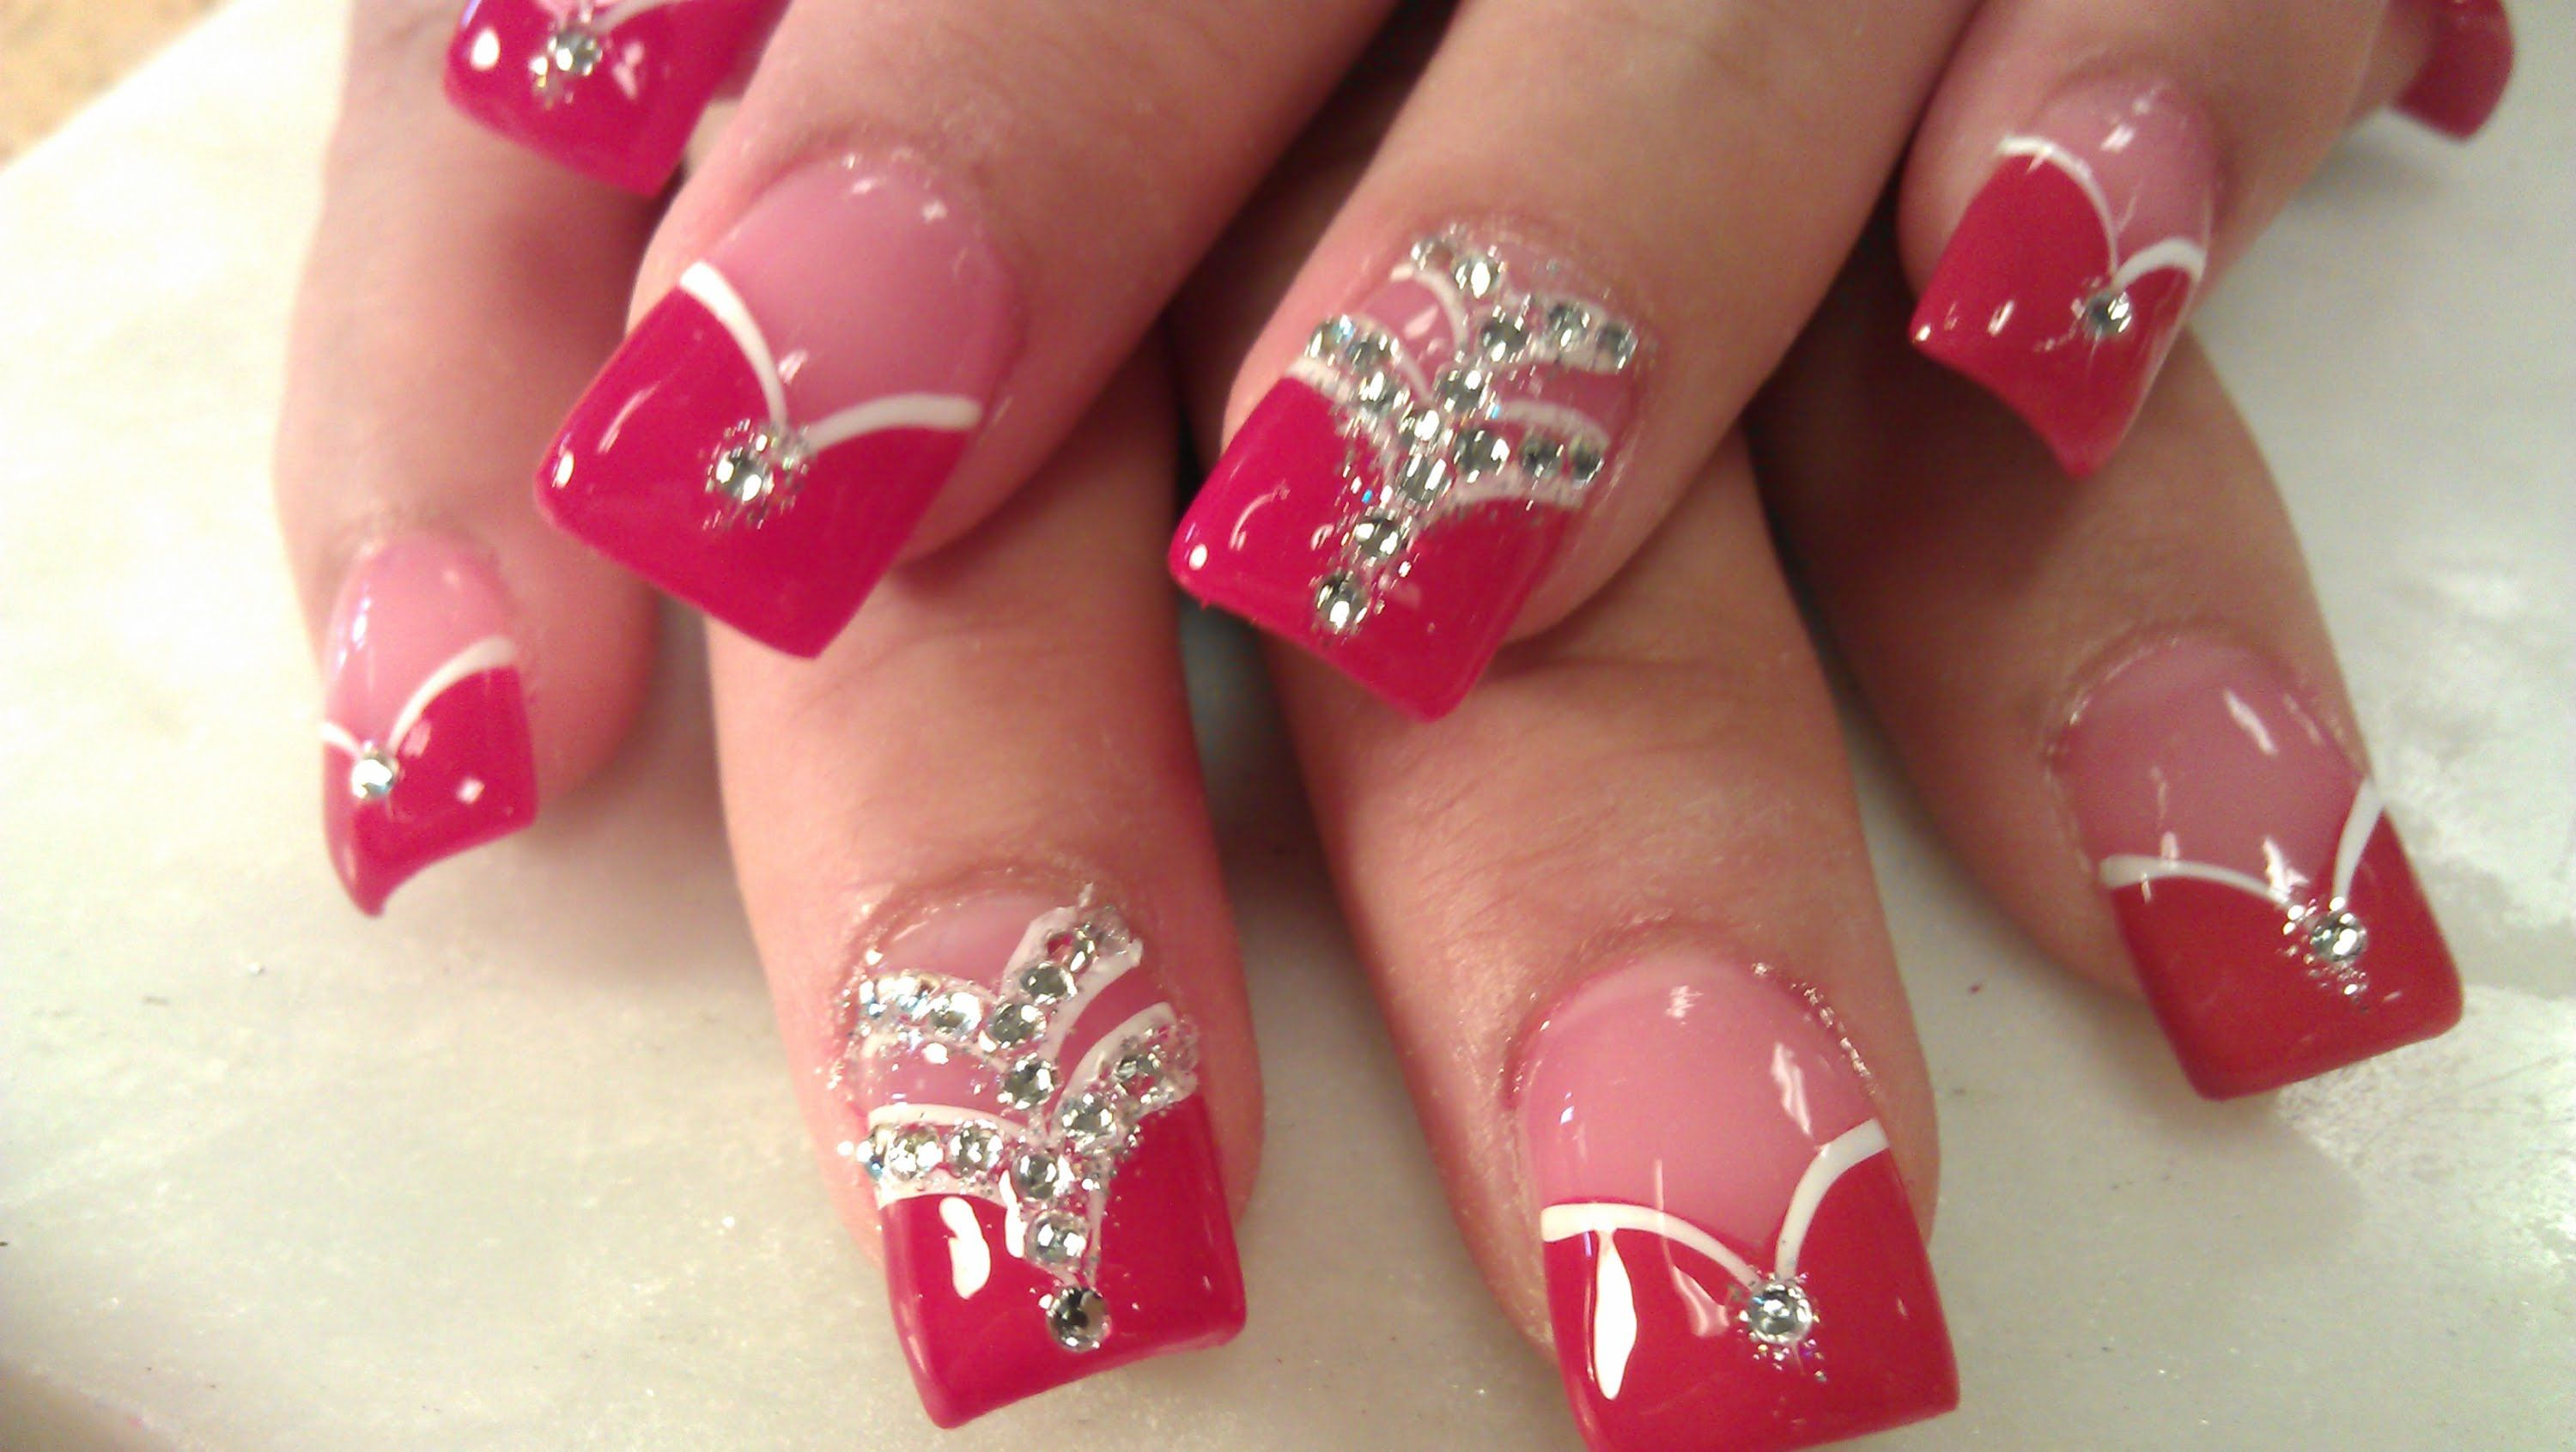 HOW TO LADY IN RED ACRYLIC NAILS - YouTube   Nails   Pinterest